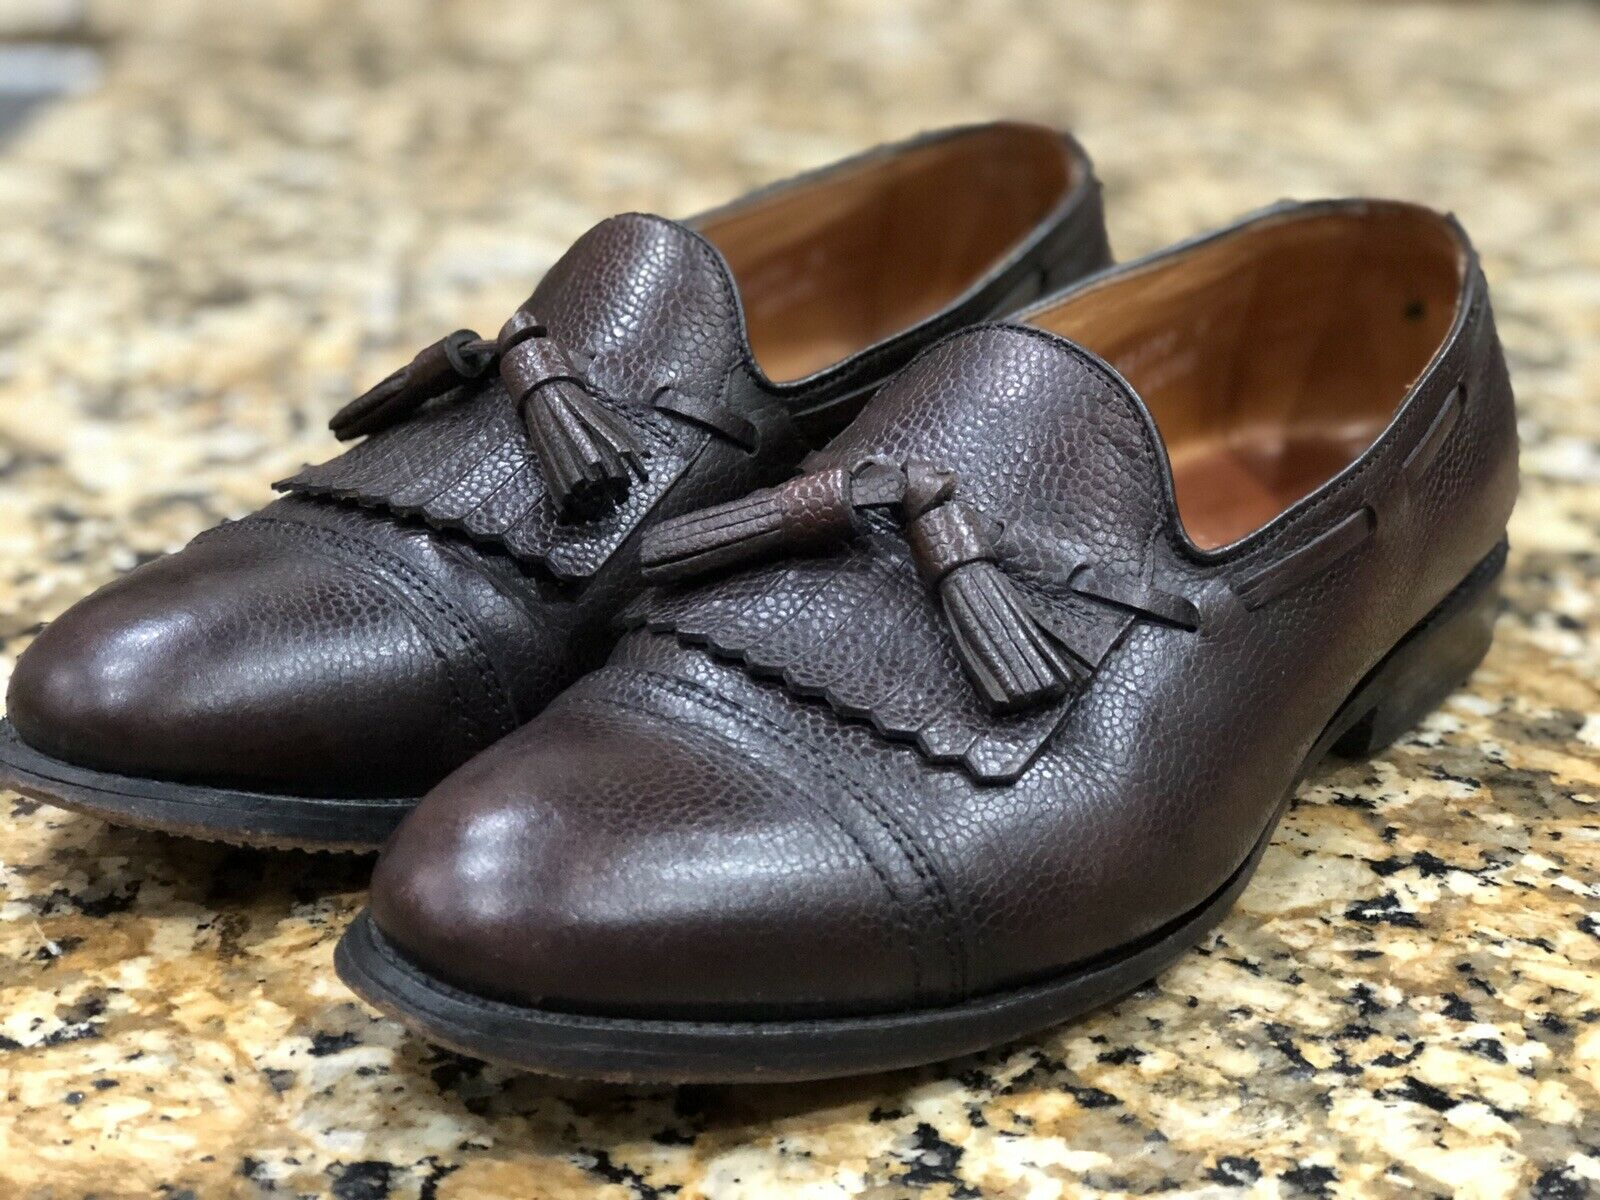 Allen Edmonds Dalton pebble grain loafers 9.5D